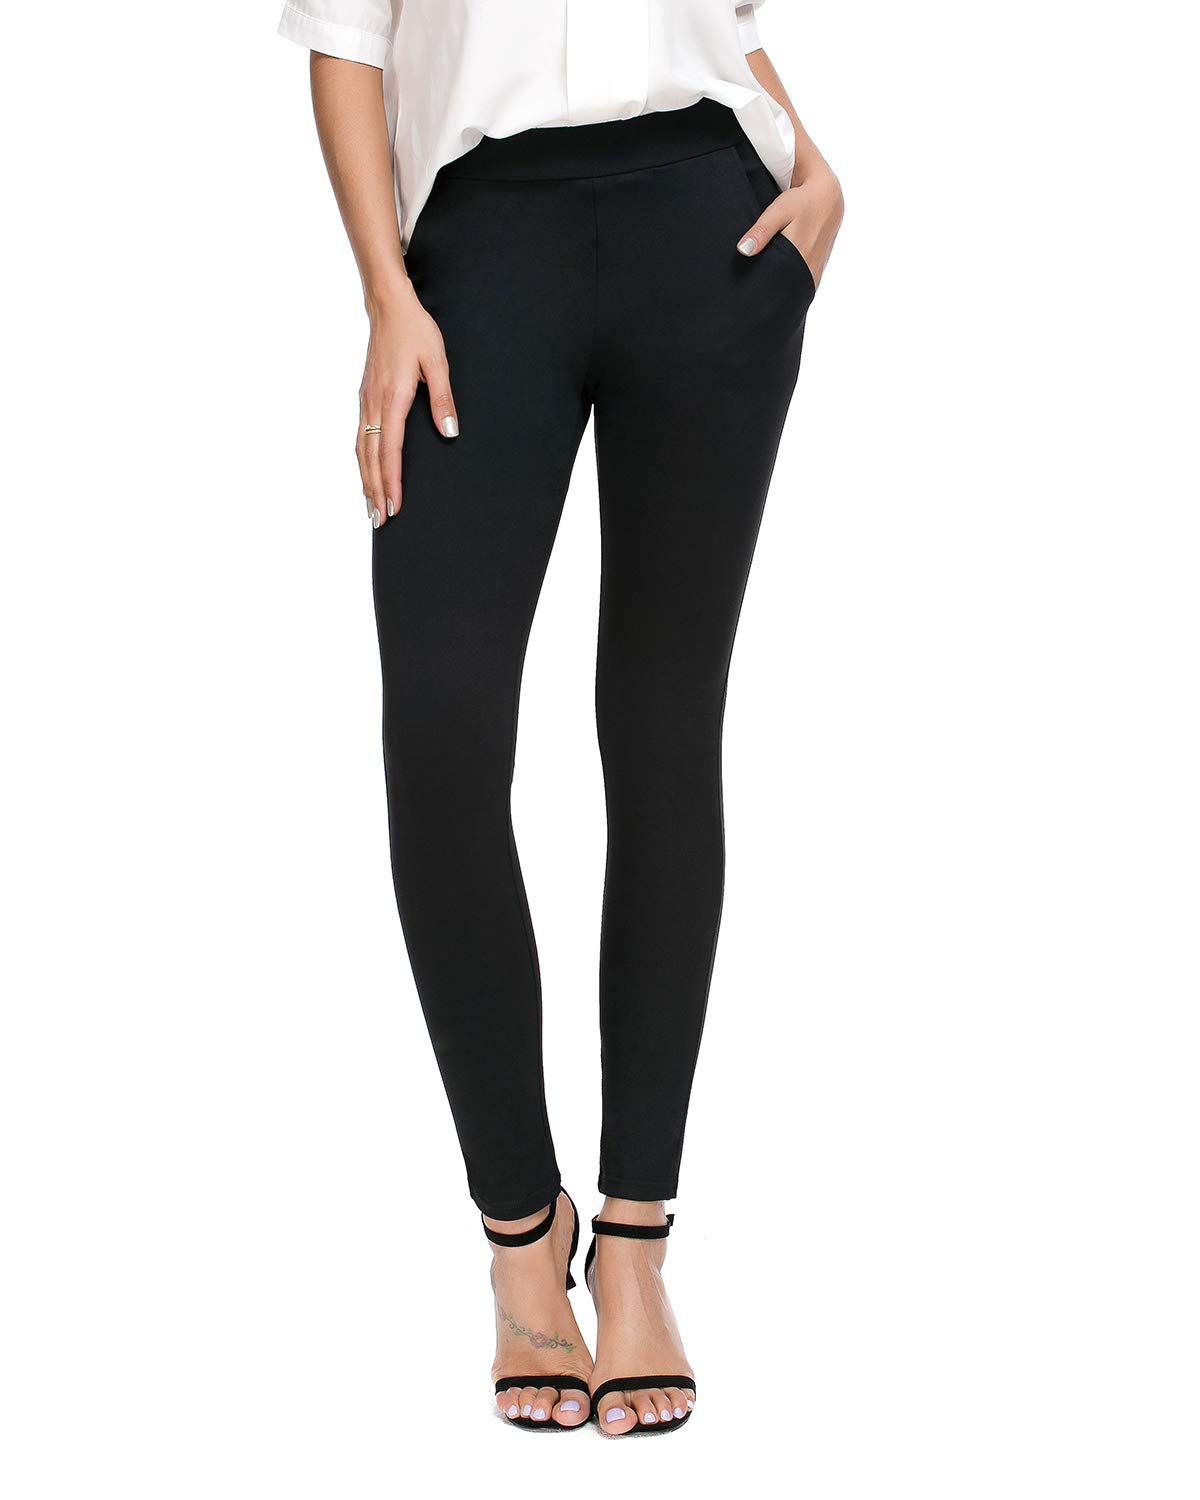 Bamans Womens Skinny Stretch Control%EF%BC%8C